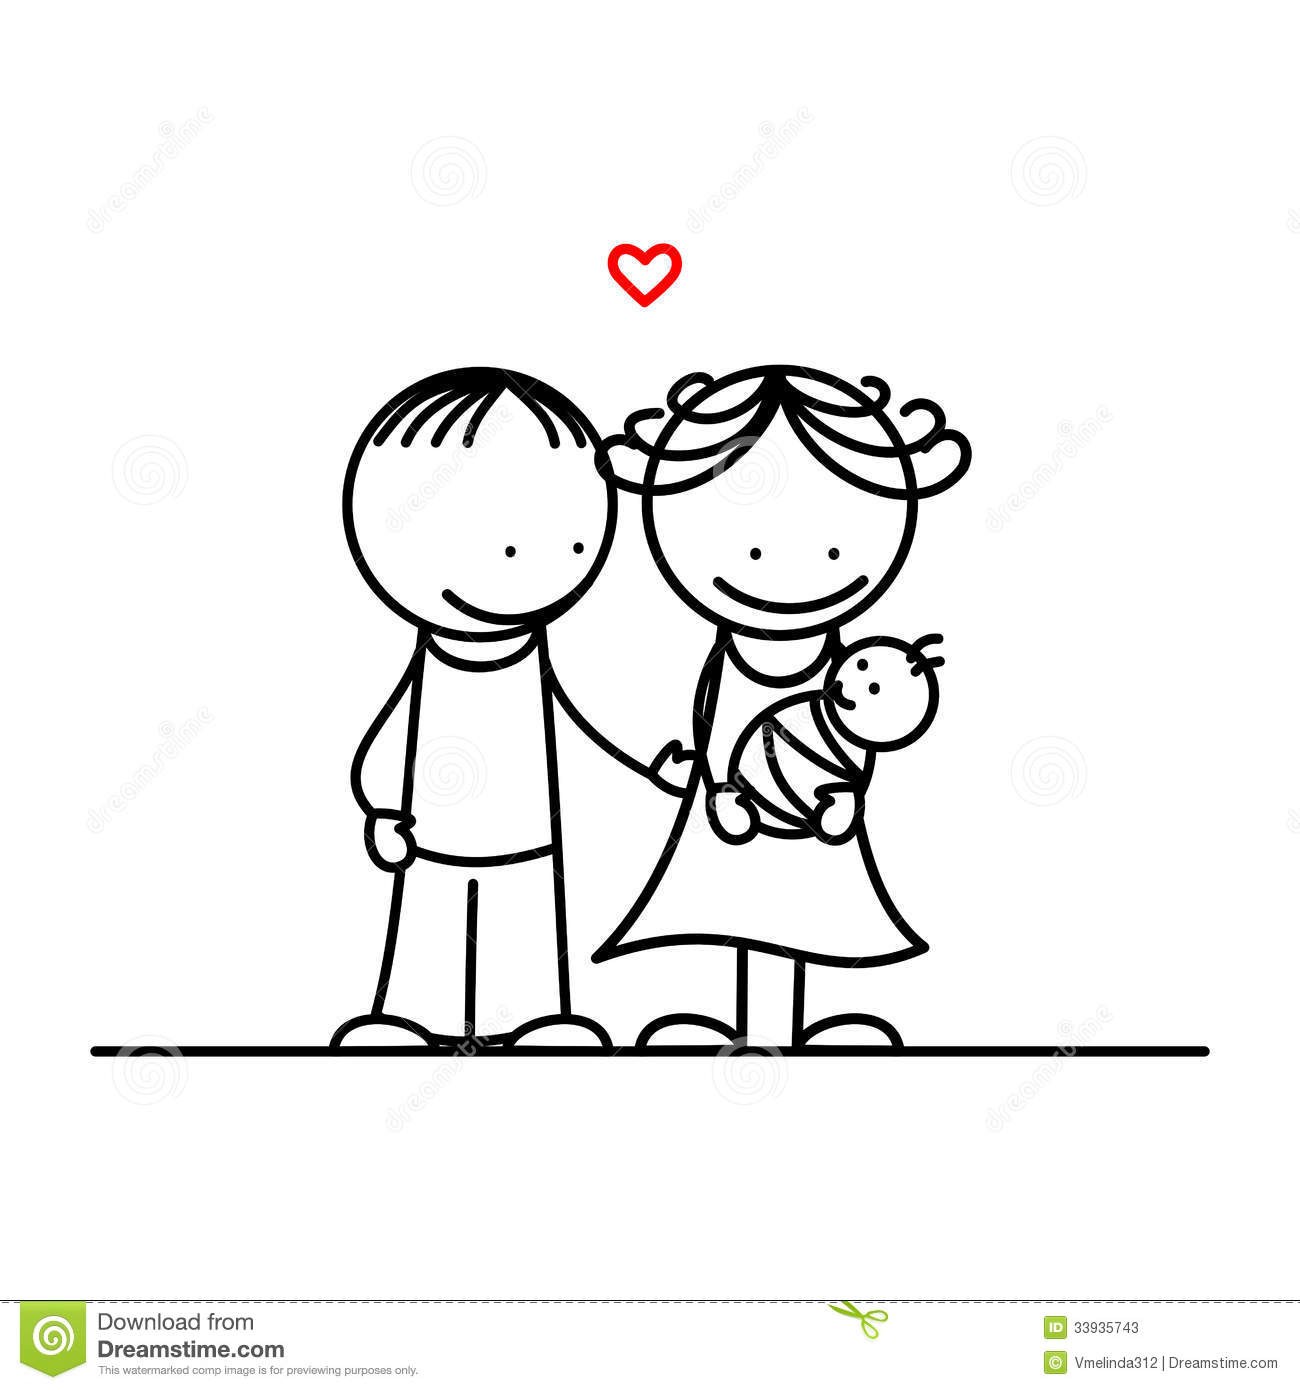 Vater und mutter clipart image black and white stock Vater mutter kind clipart - ClipartFest image black and white stock